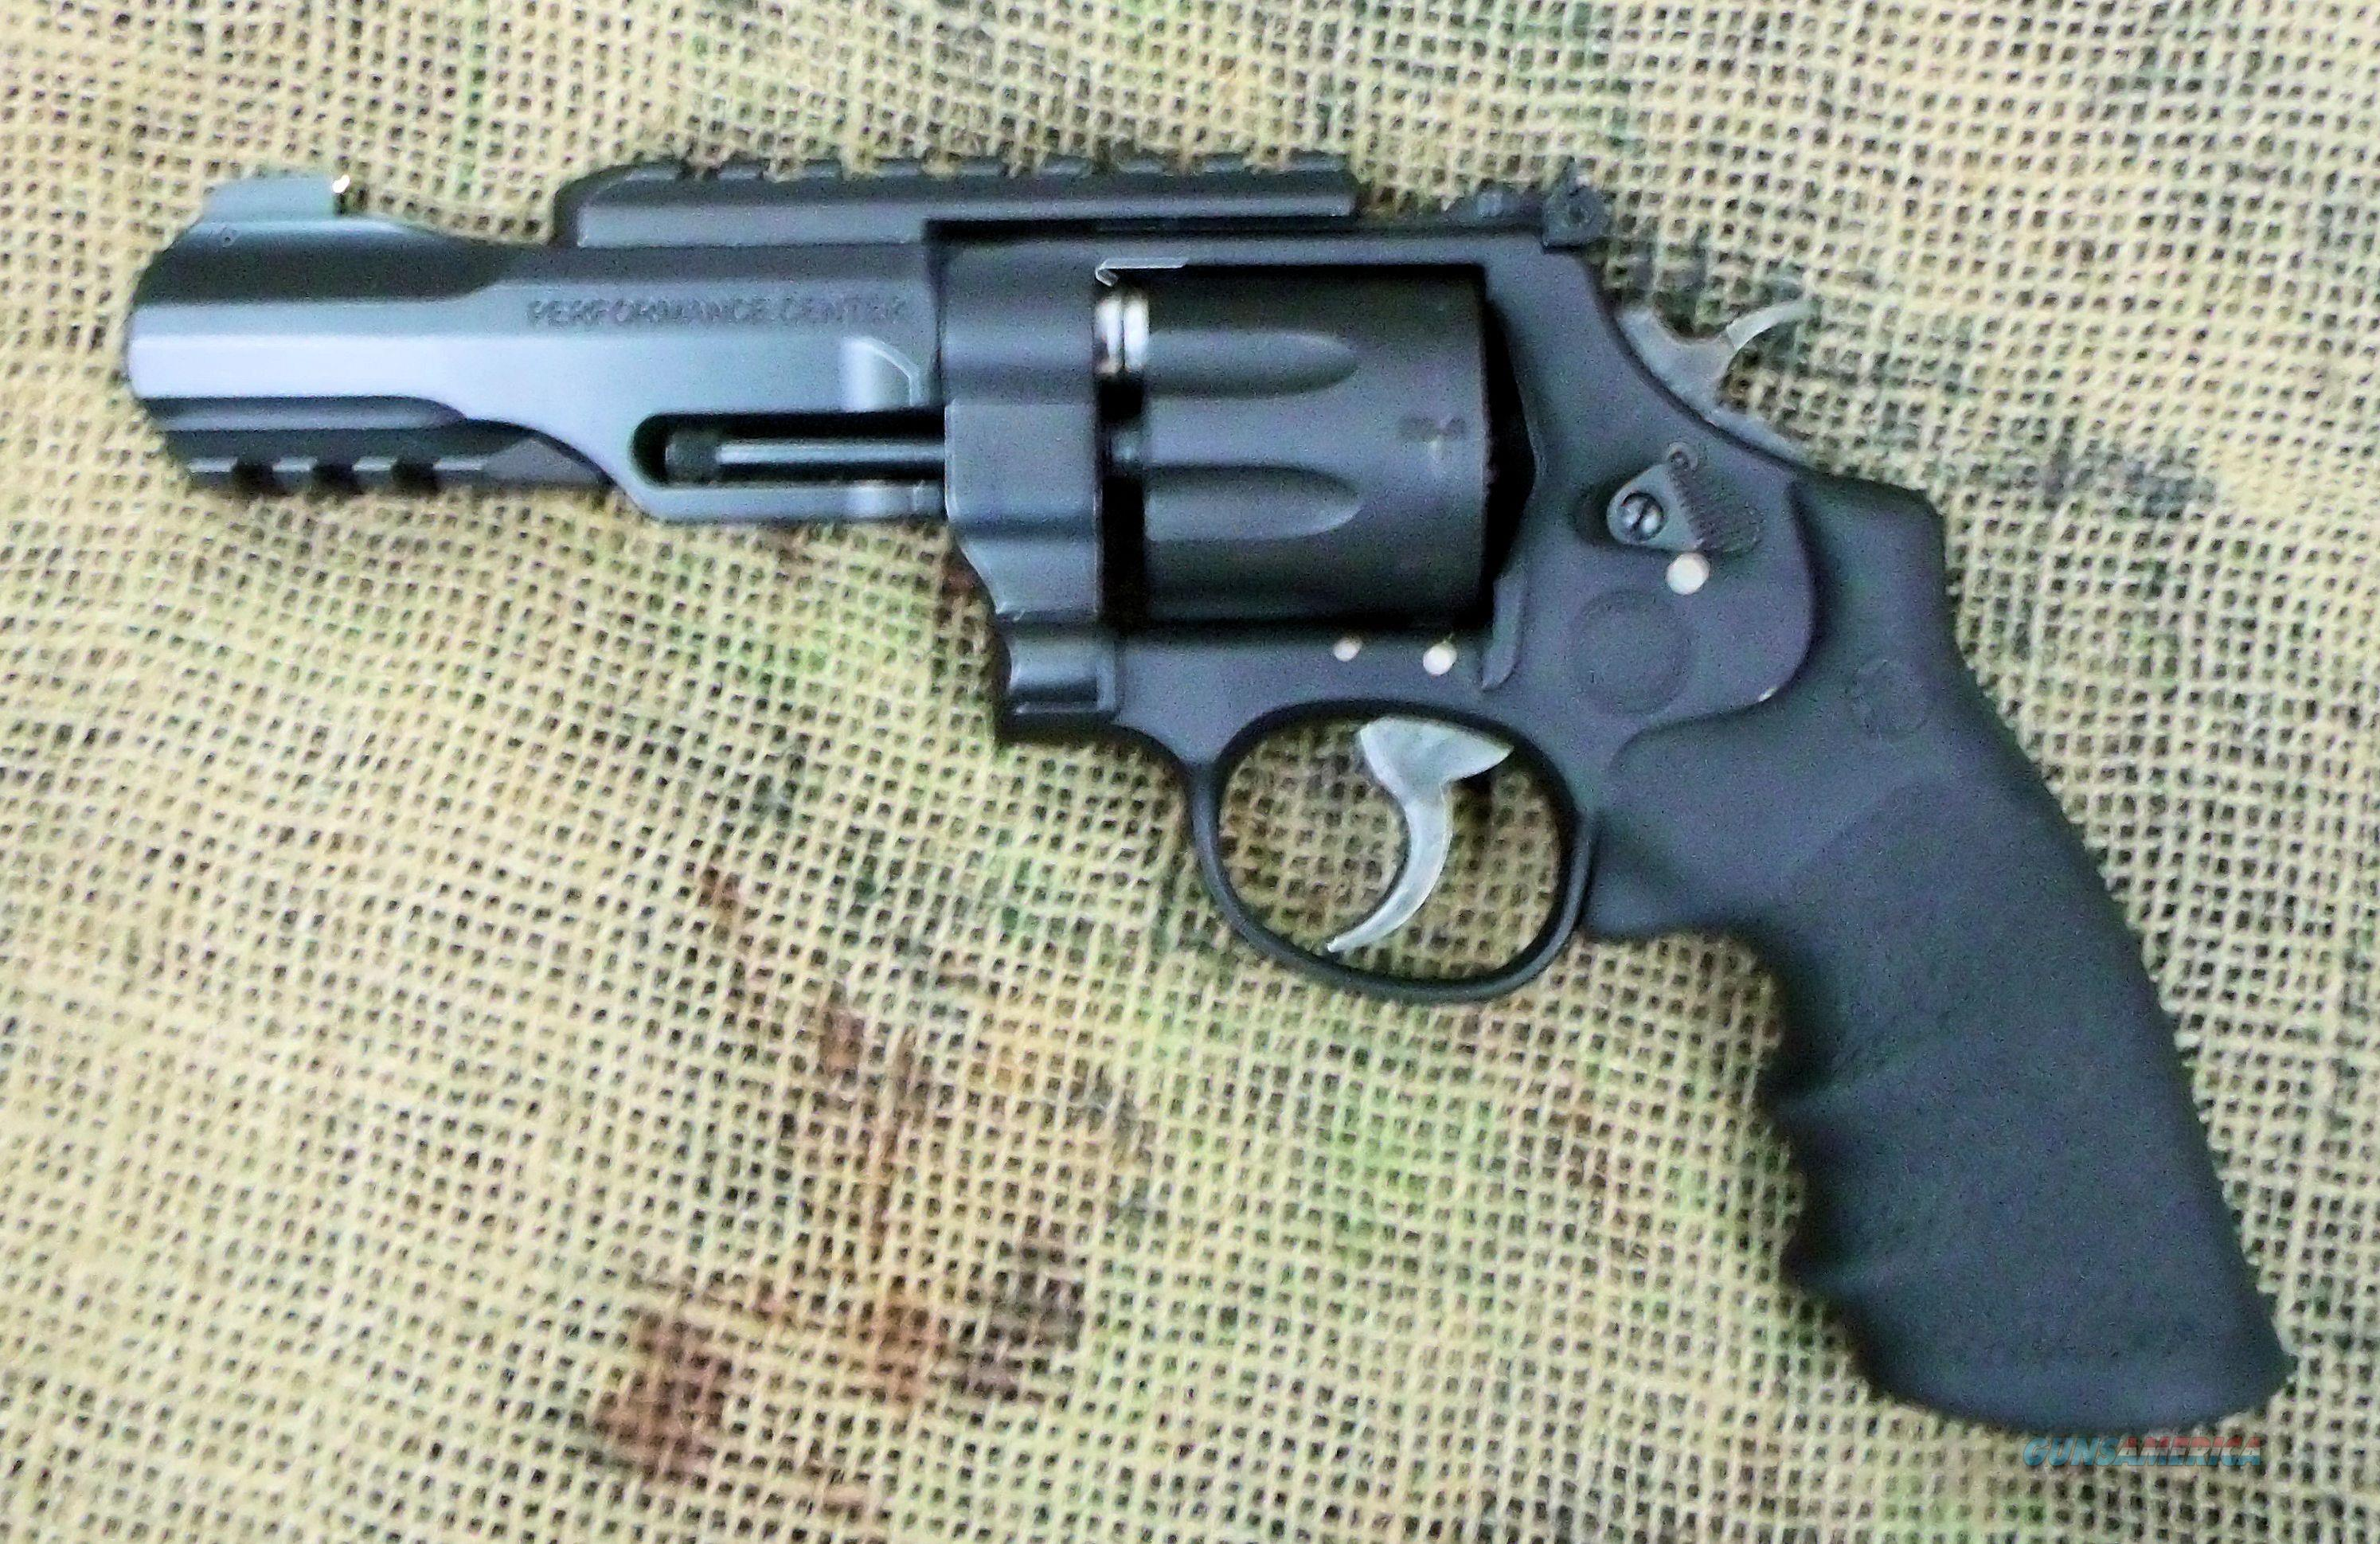 SMITH & WESSON Mod. 327 TRR8 Revolver, 357 Mag.... for sale